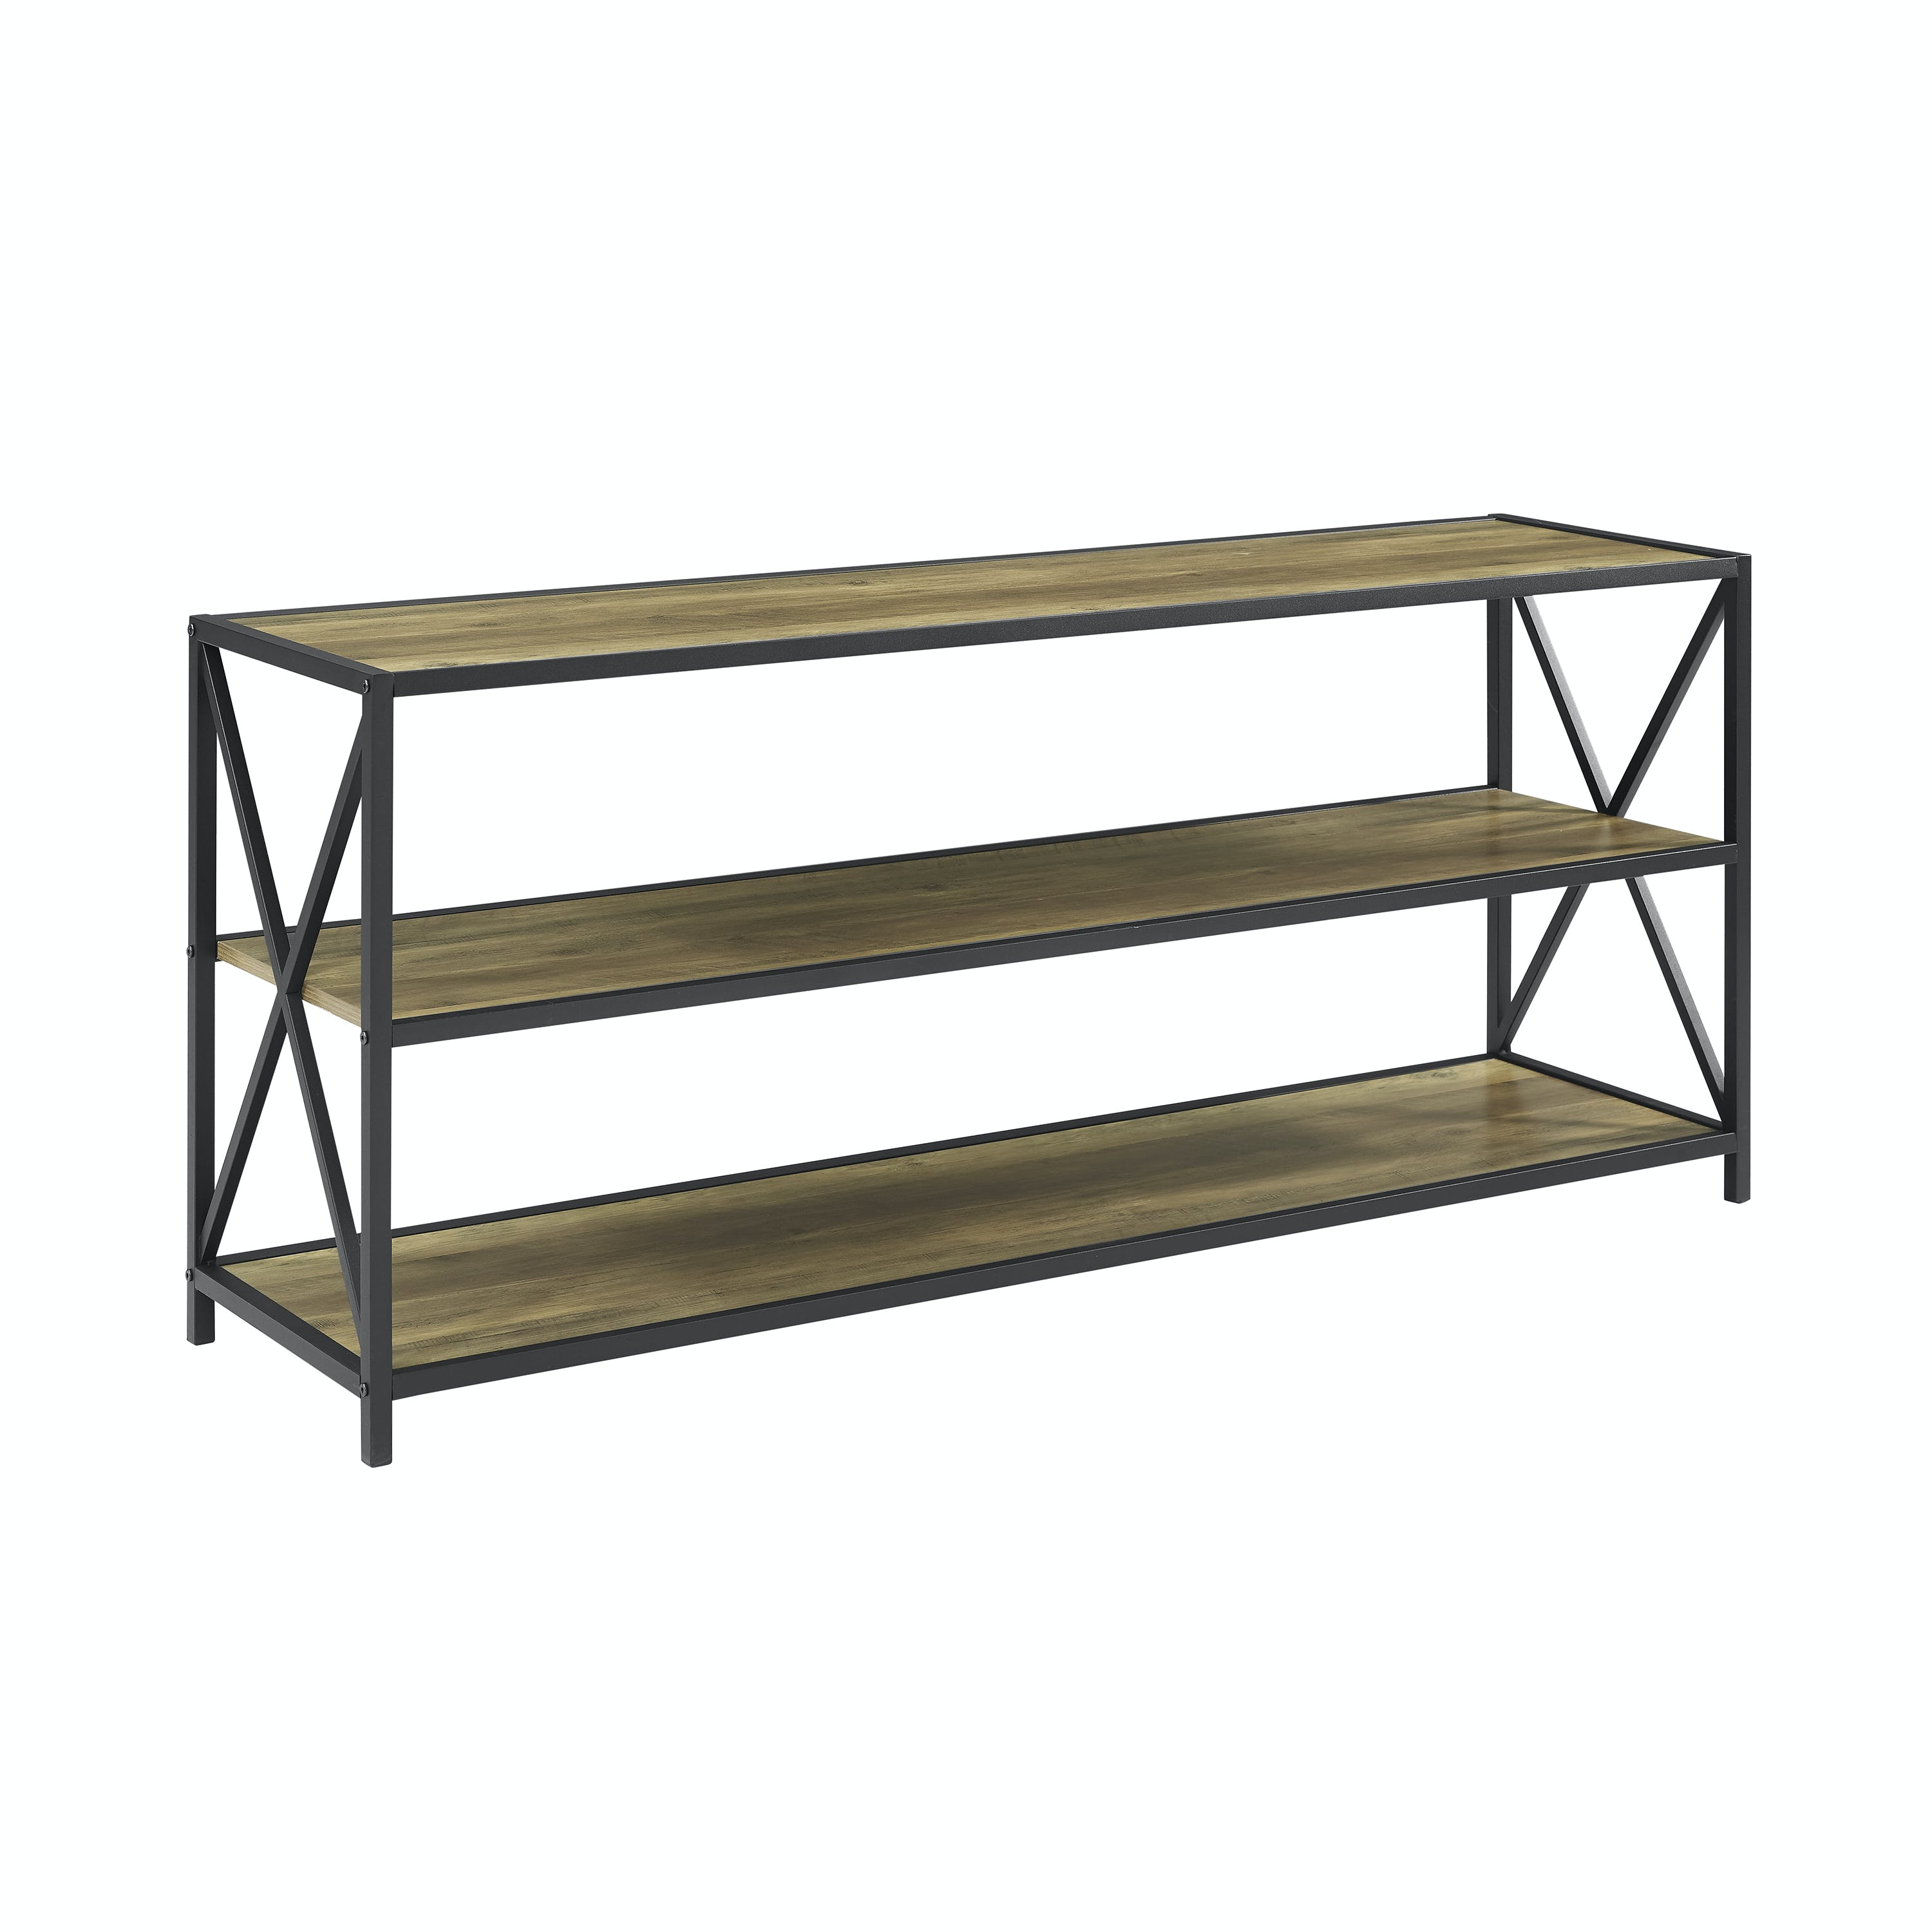 Ft Myers Home Office 60 Urban Industrial Rustic Farmhouse Industrial X Frame Metal And Wood Bookcase Rustic Oak Wedbs60xmwro Walter E Smithe